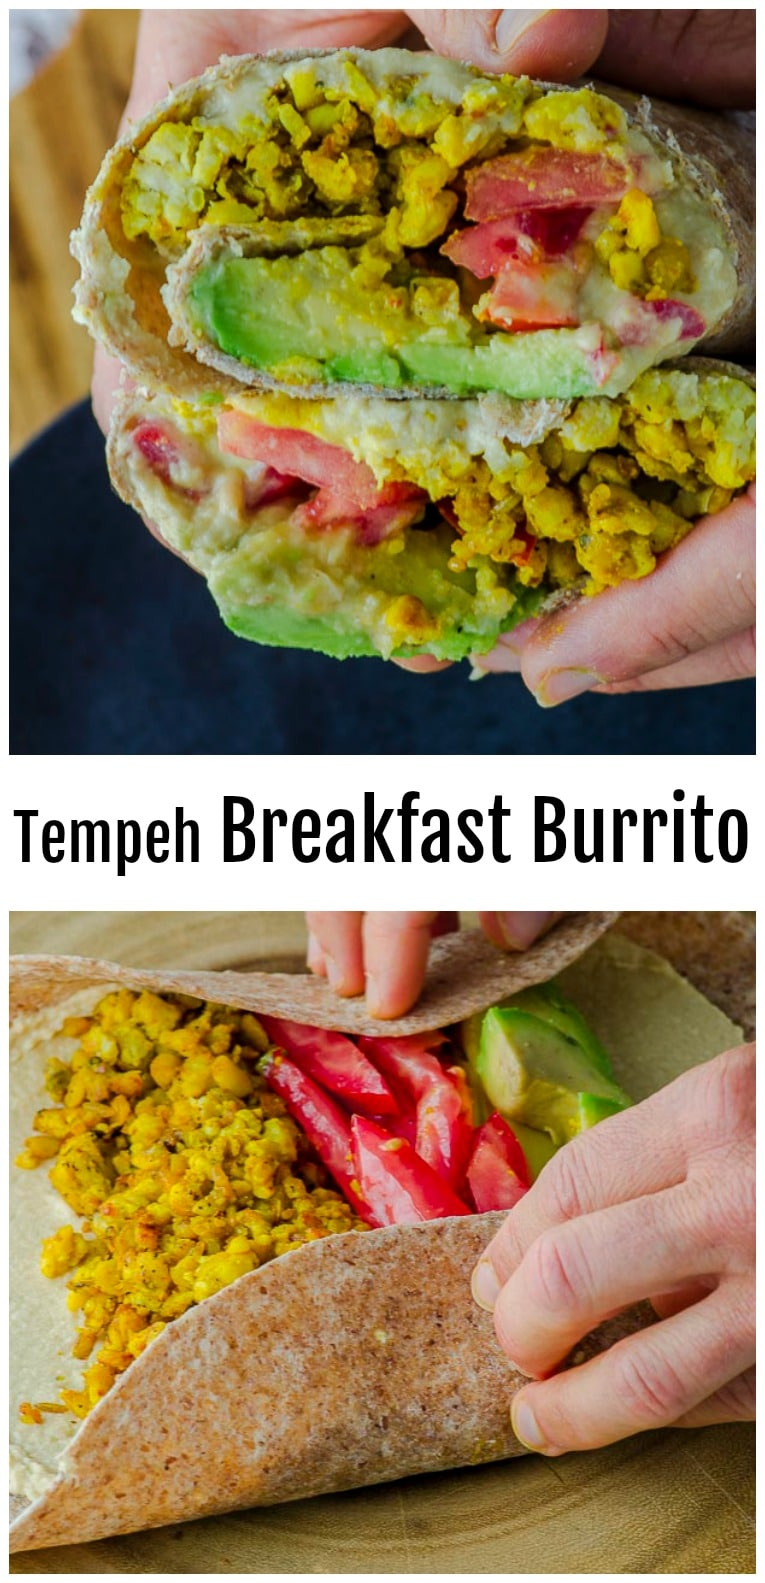 Loaded with plant-based protein, this breakfast burrito will keep you full and energized all morning. Prepare the tempeh the night before, and you can have a grab-and-go breakfast ready in less than 15 minutes! #vegan  #Breakfast  #burrito #tempeh #avocado #healthy #recipe